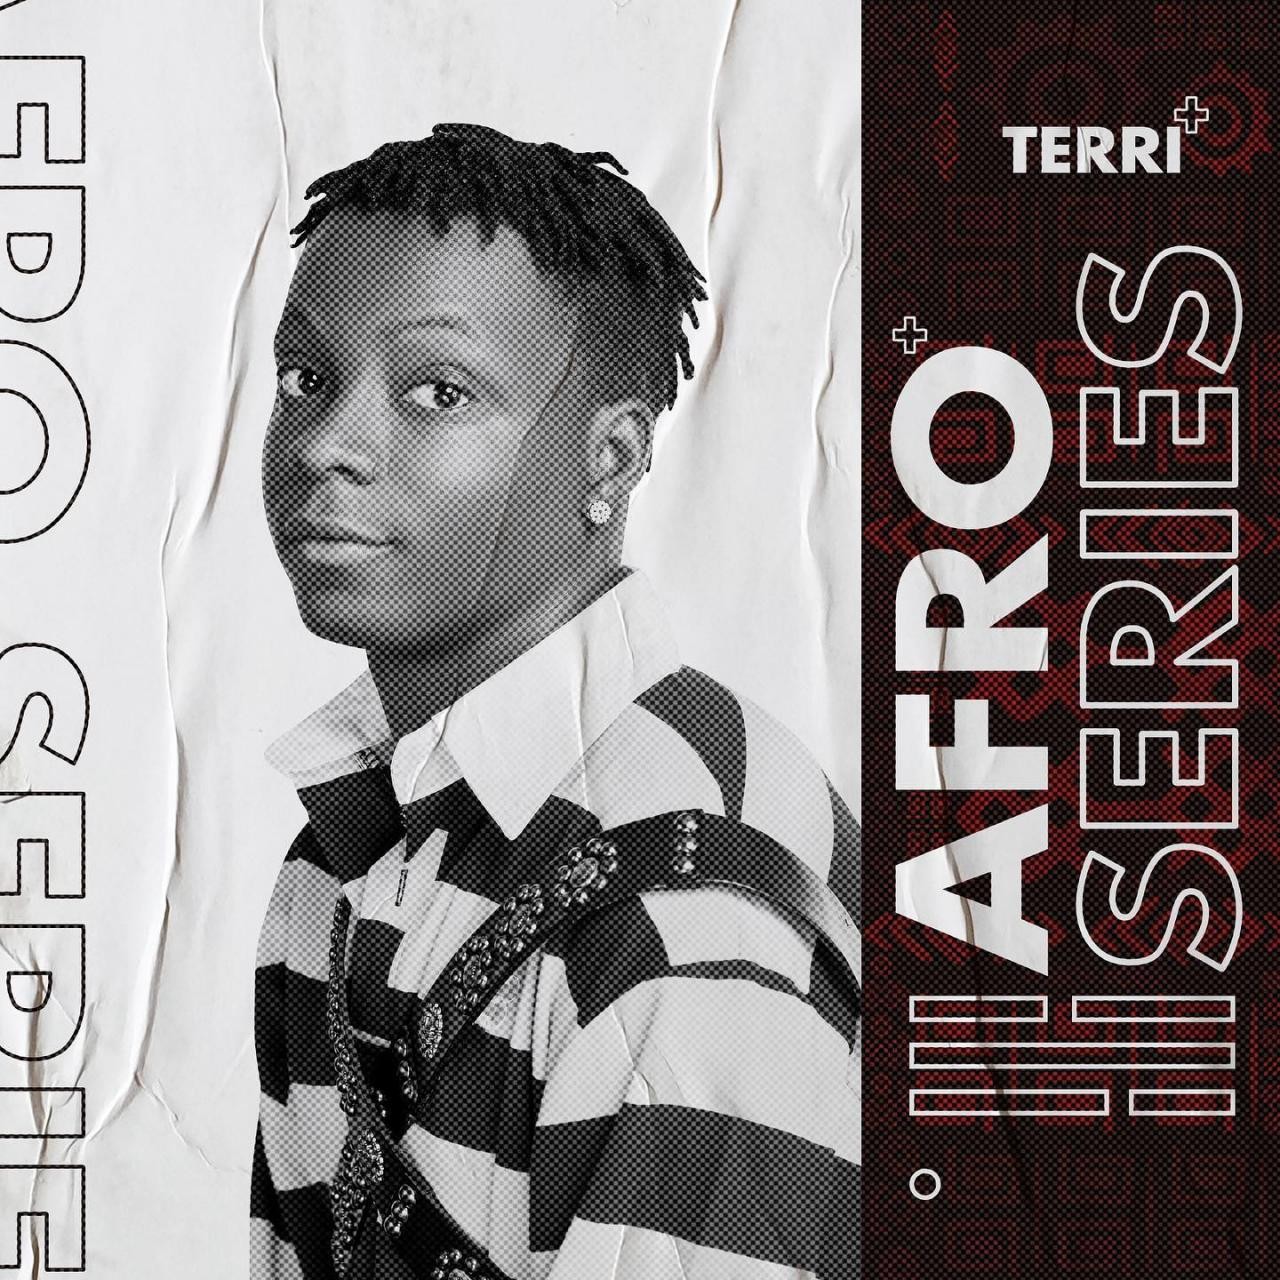 Terri – Kill Man